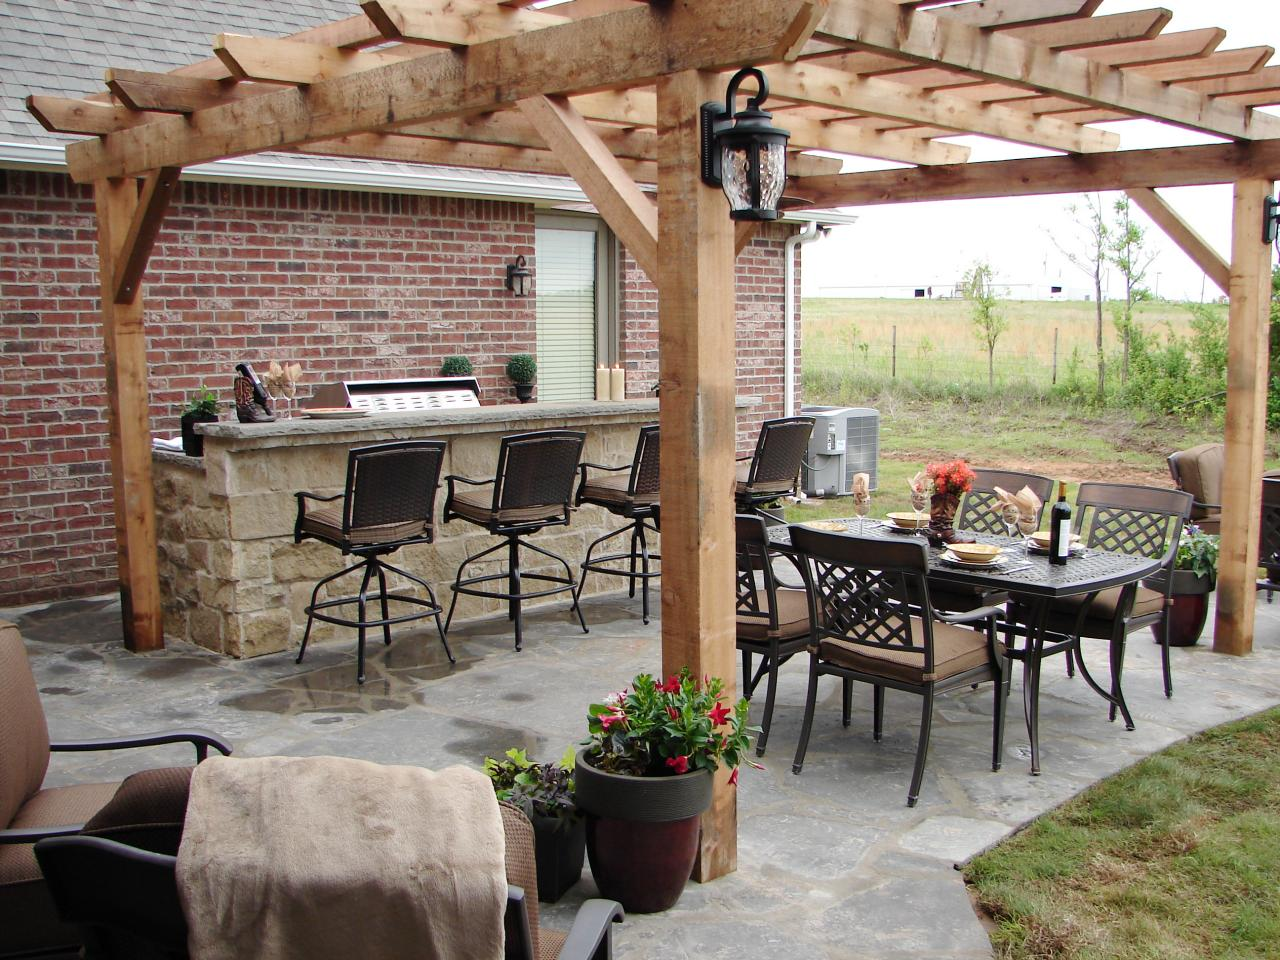 30 Diy Outdoor Party Ideas And Entertaining Tips Diy Network Blog Made Remade Diy